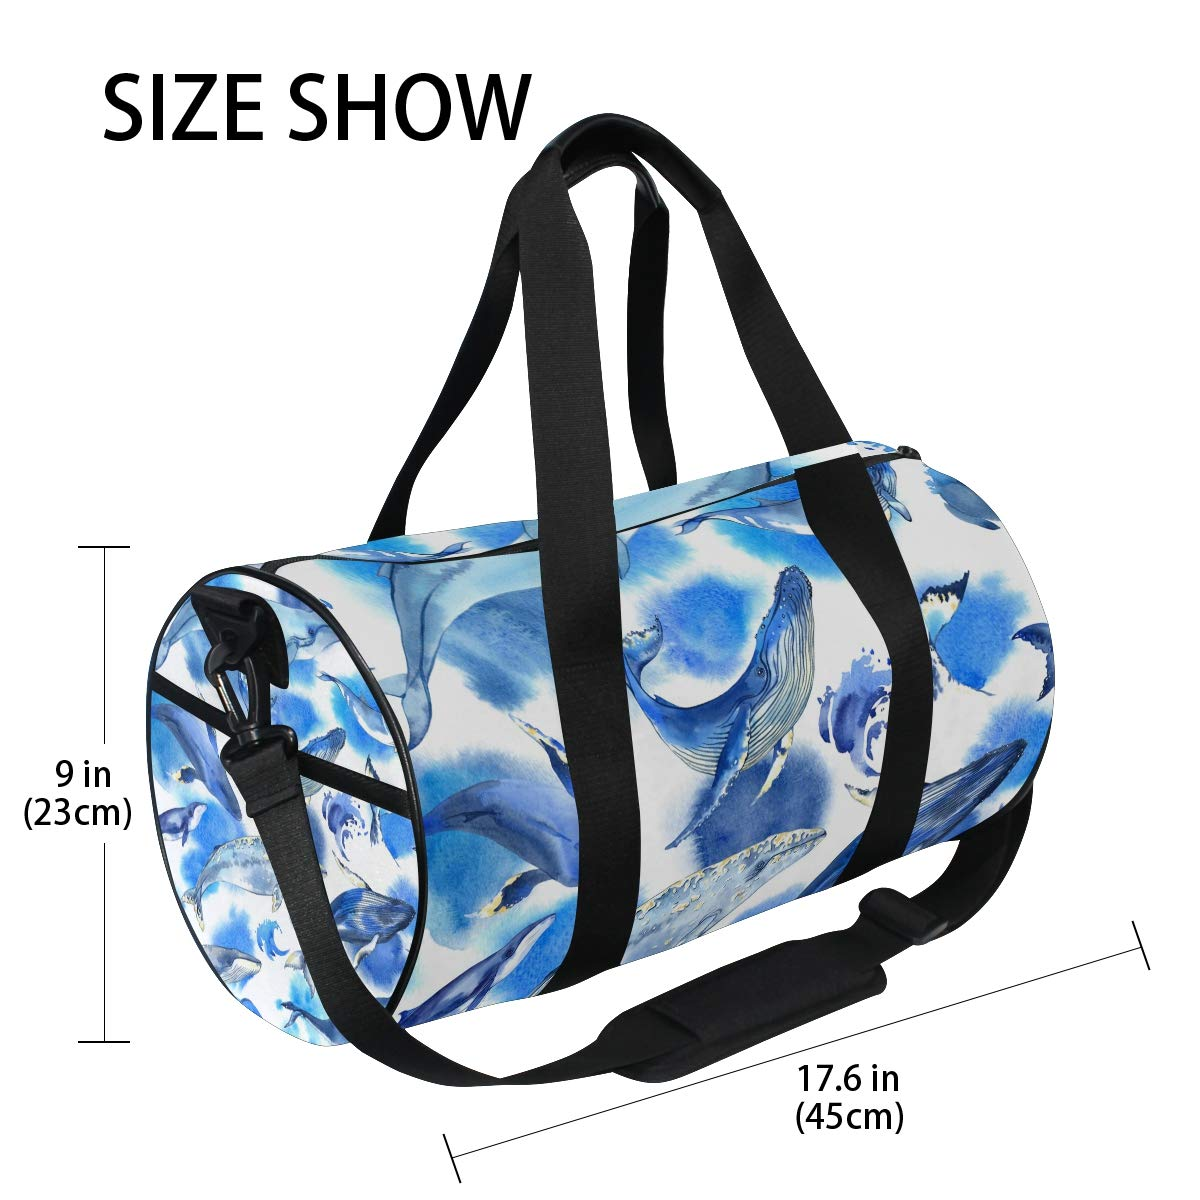 Sea Whale Yoga Sports Gym Duffle Bags Tote Sling Travel Bag Patterned Canvas with Pocket and Zipper For Men Women Bag by EVERUI (Image #4)